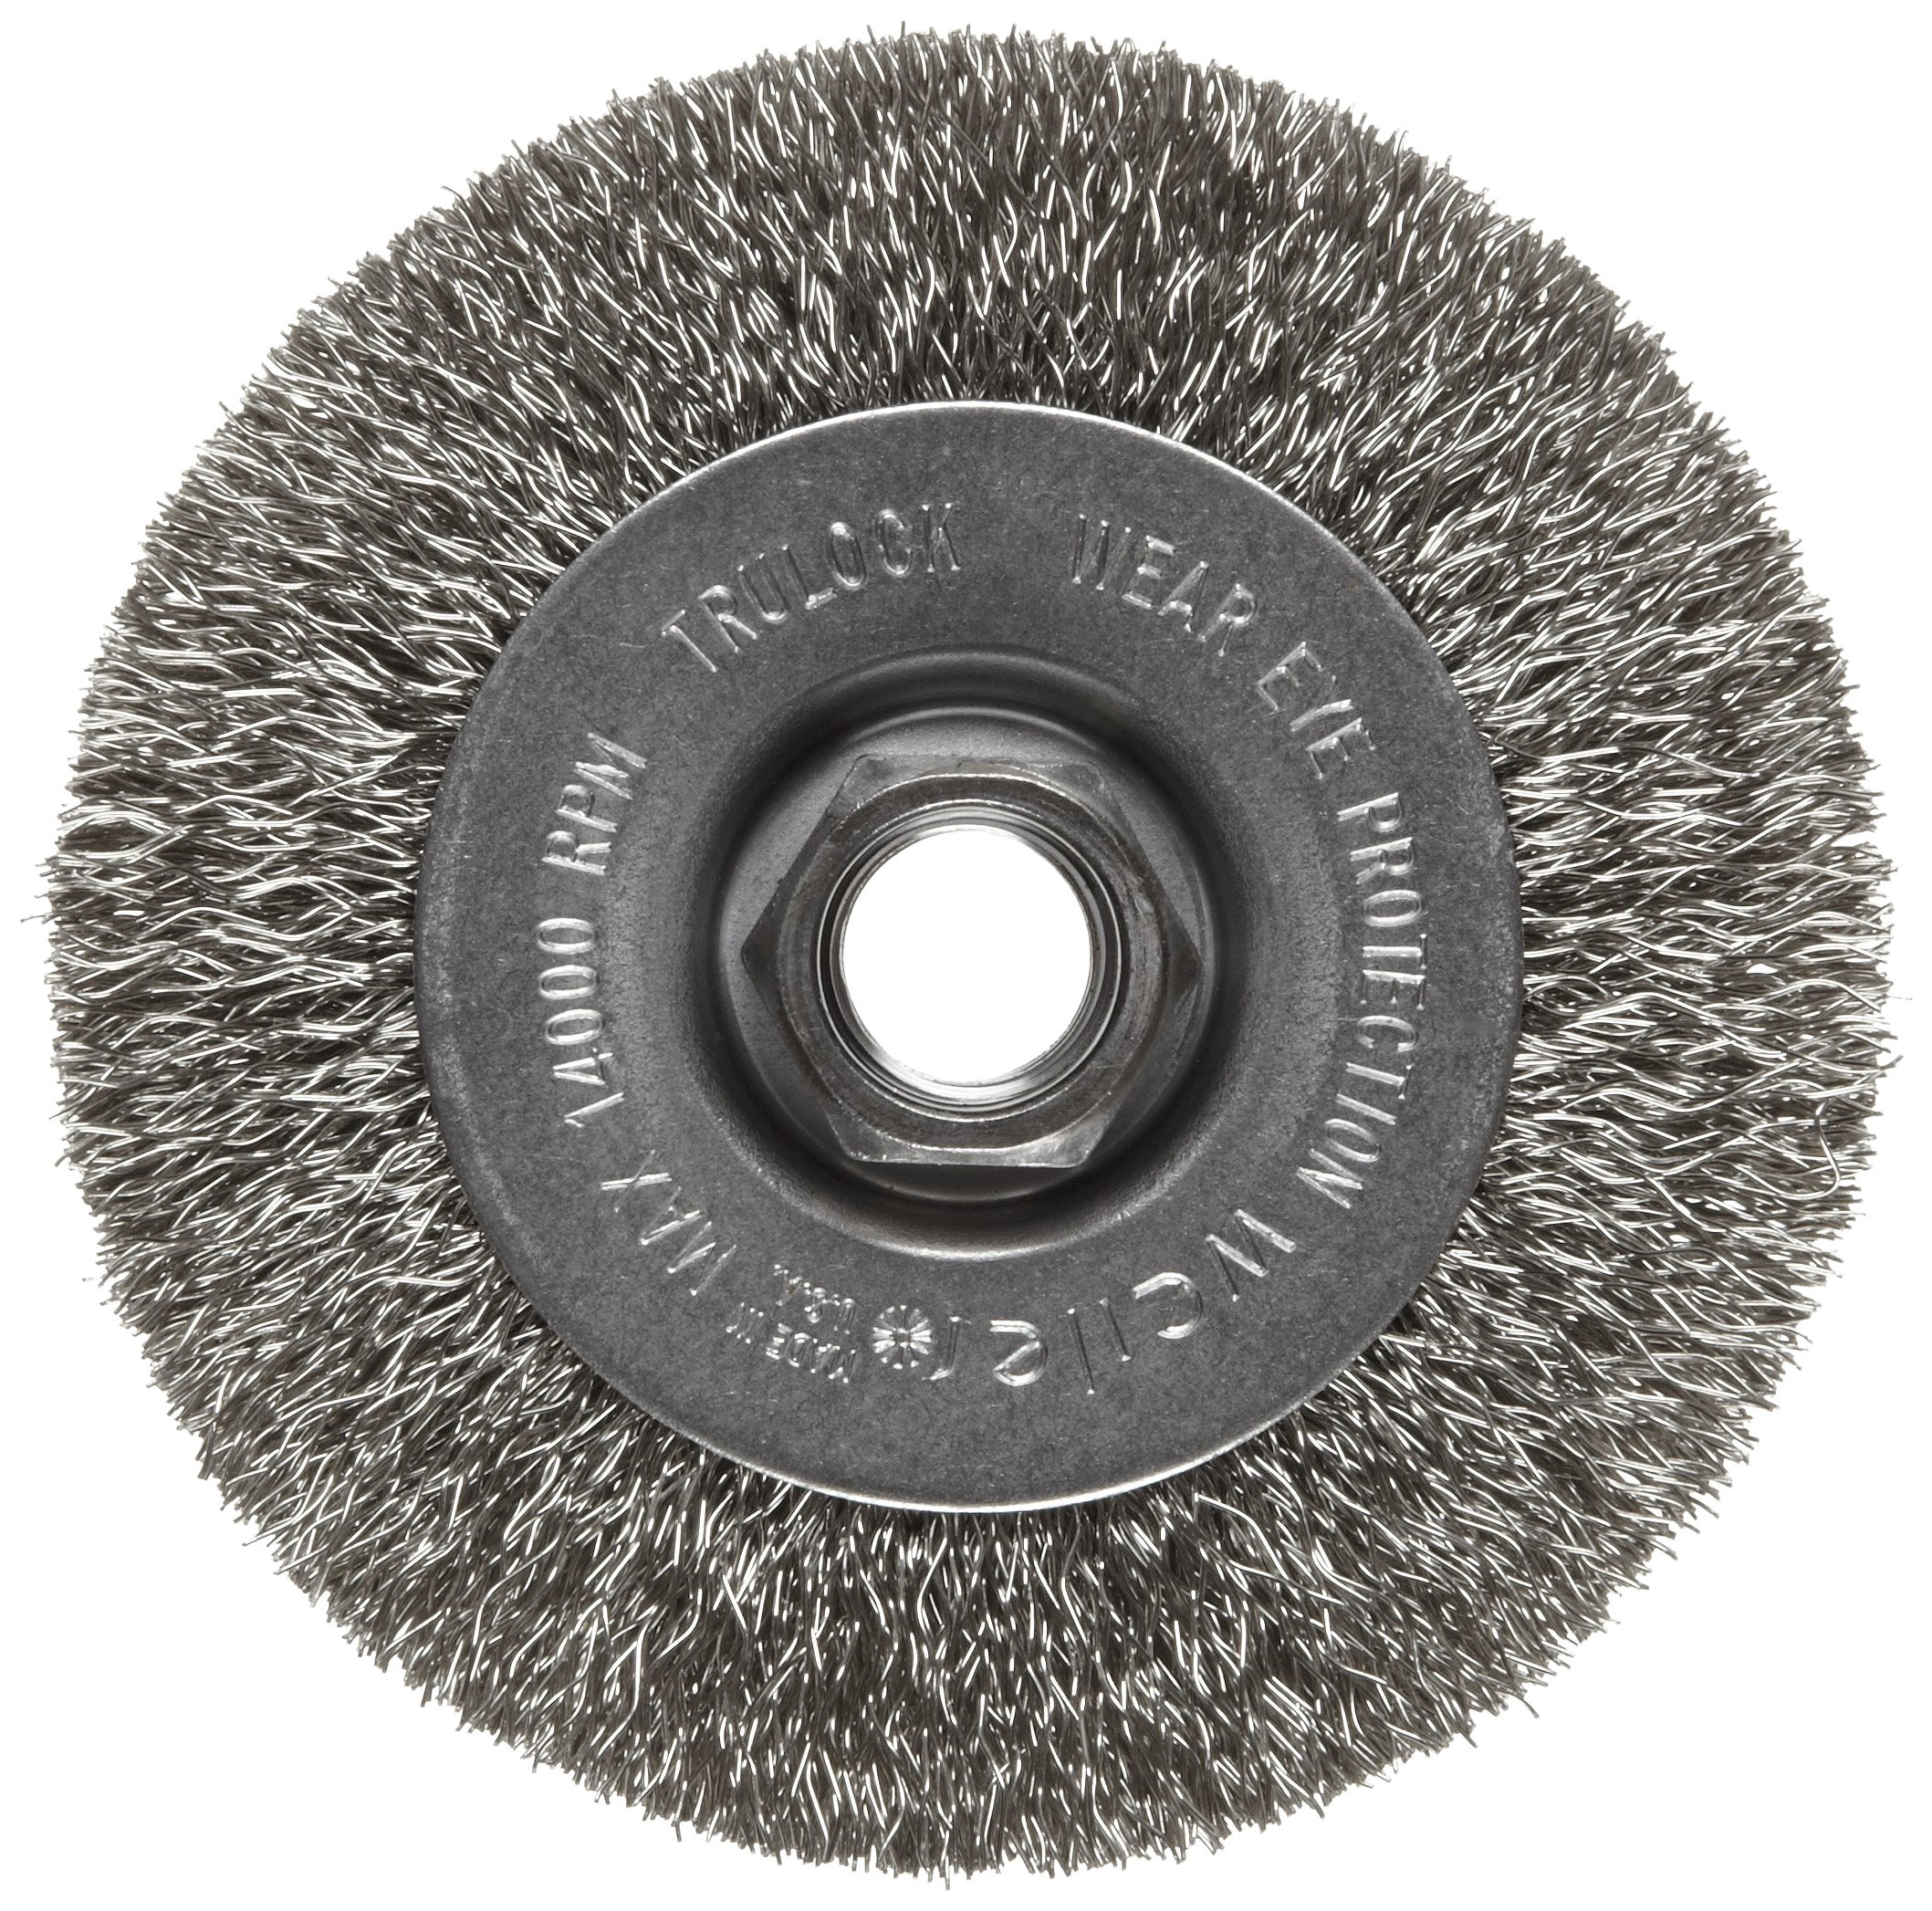 Weiler Trulock Narrow Face Wire Wheel Brush, Threaded Hole, Stainless Steel 302, Crimped Wire, 4'' Diameter, 0.014'' Wire Diameter, 5/8-11'' Arbor, 7/8'' Bristle Length, 1/2'' Brush Face Width, 14000 rpm